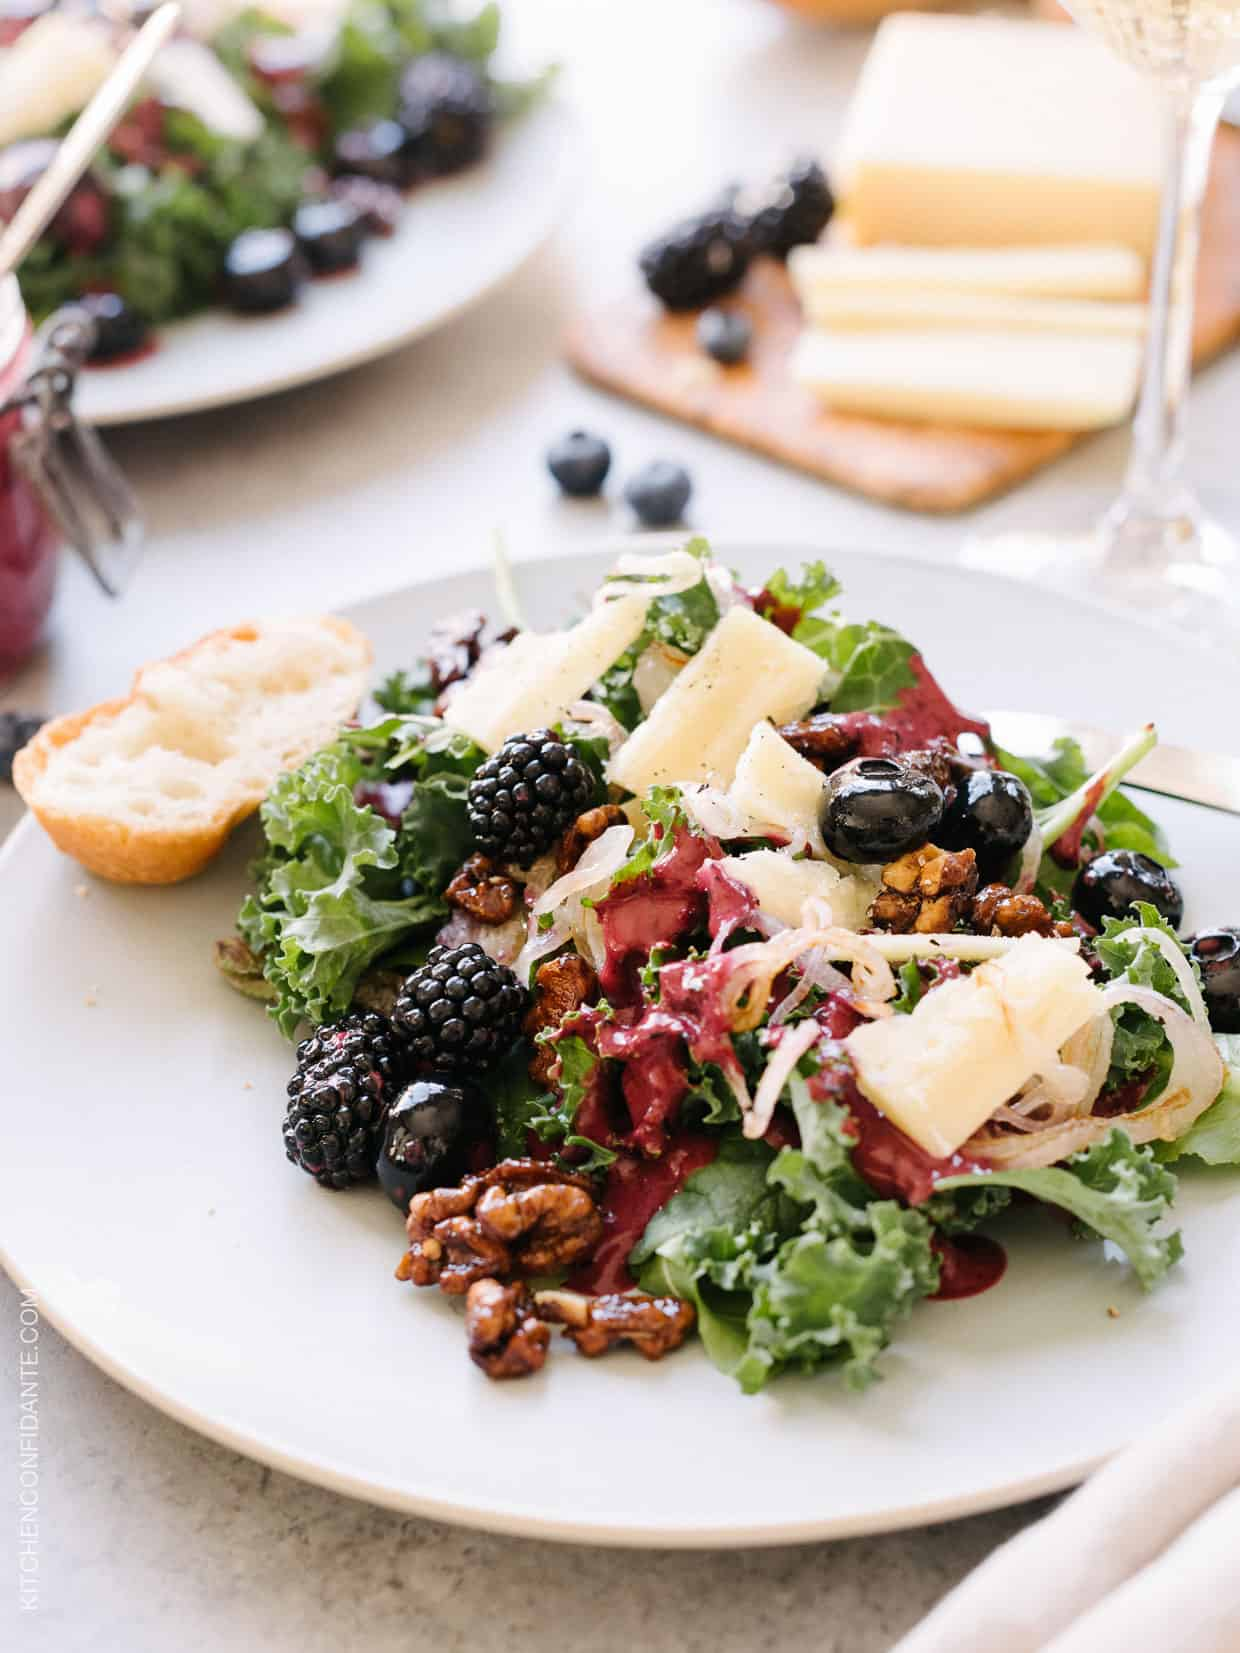 Blackberry and Blueberry Kale Salad with Aged Havarti on a white plate.